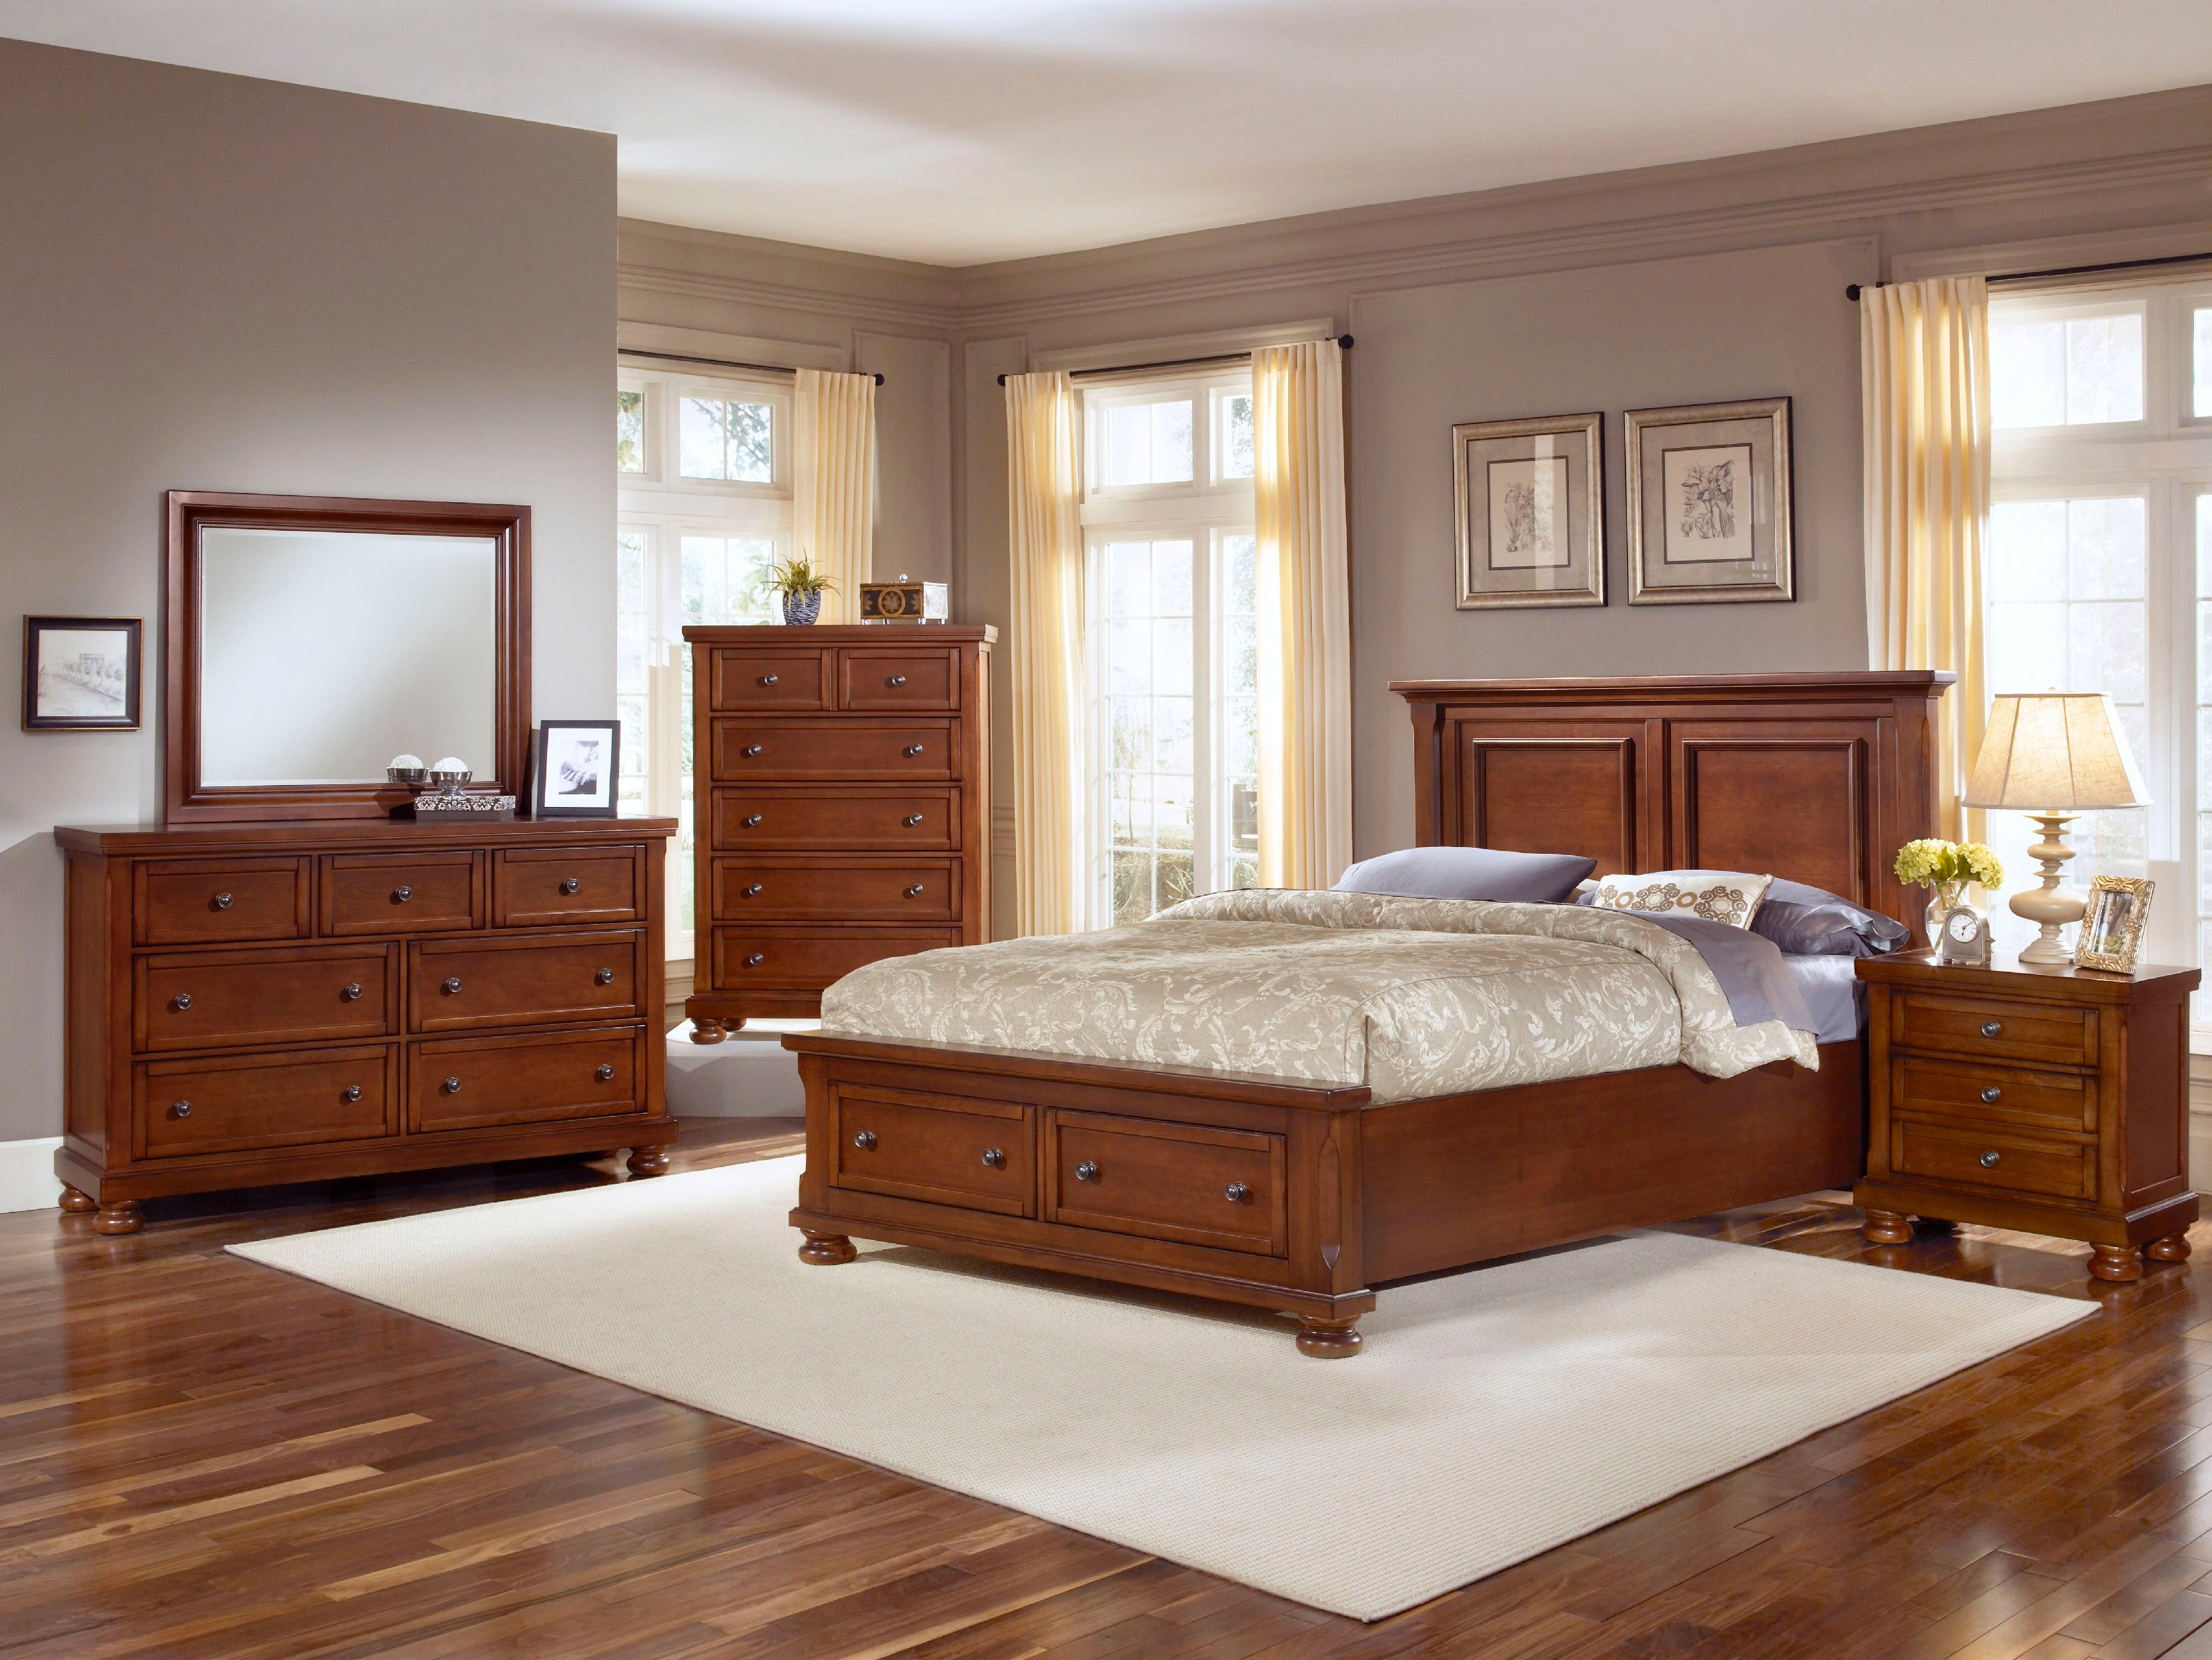 bassett bedroom furniture vaughan bassett bedroom storage footboard 5 0 532 050b 10185